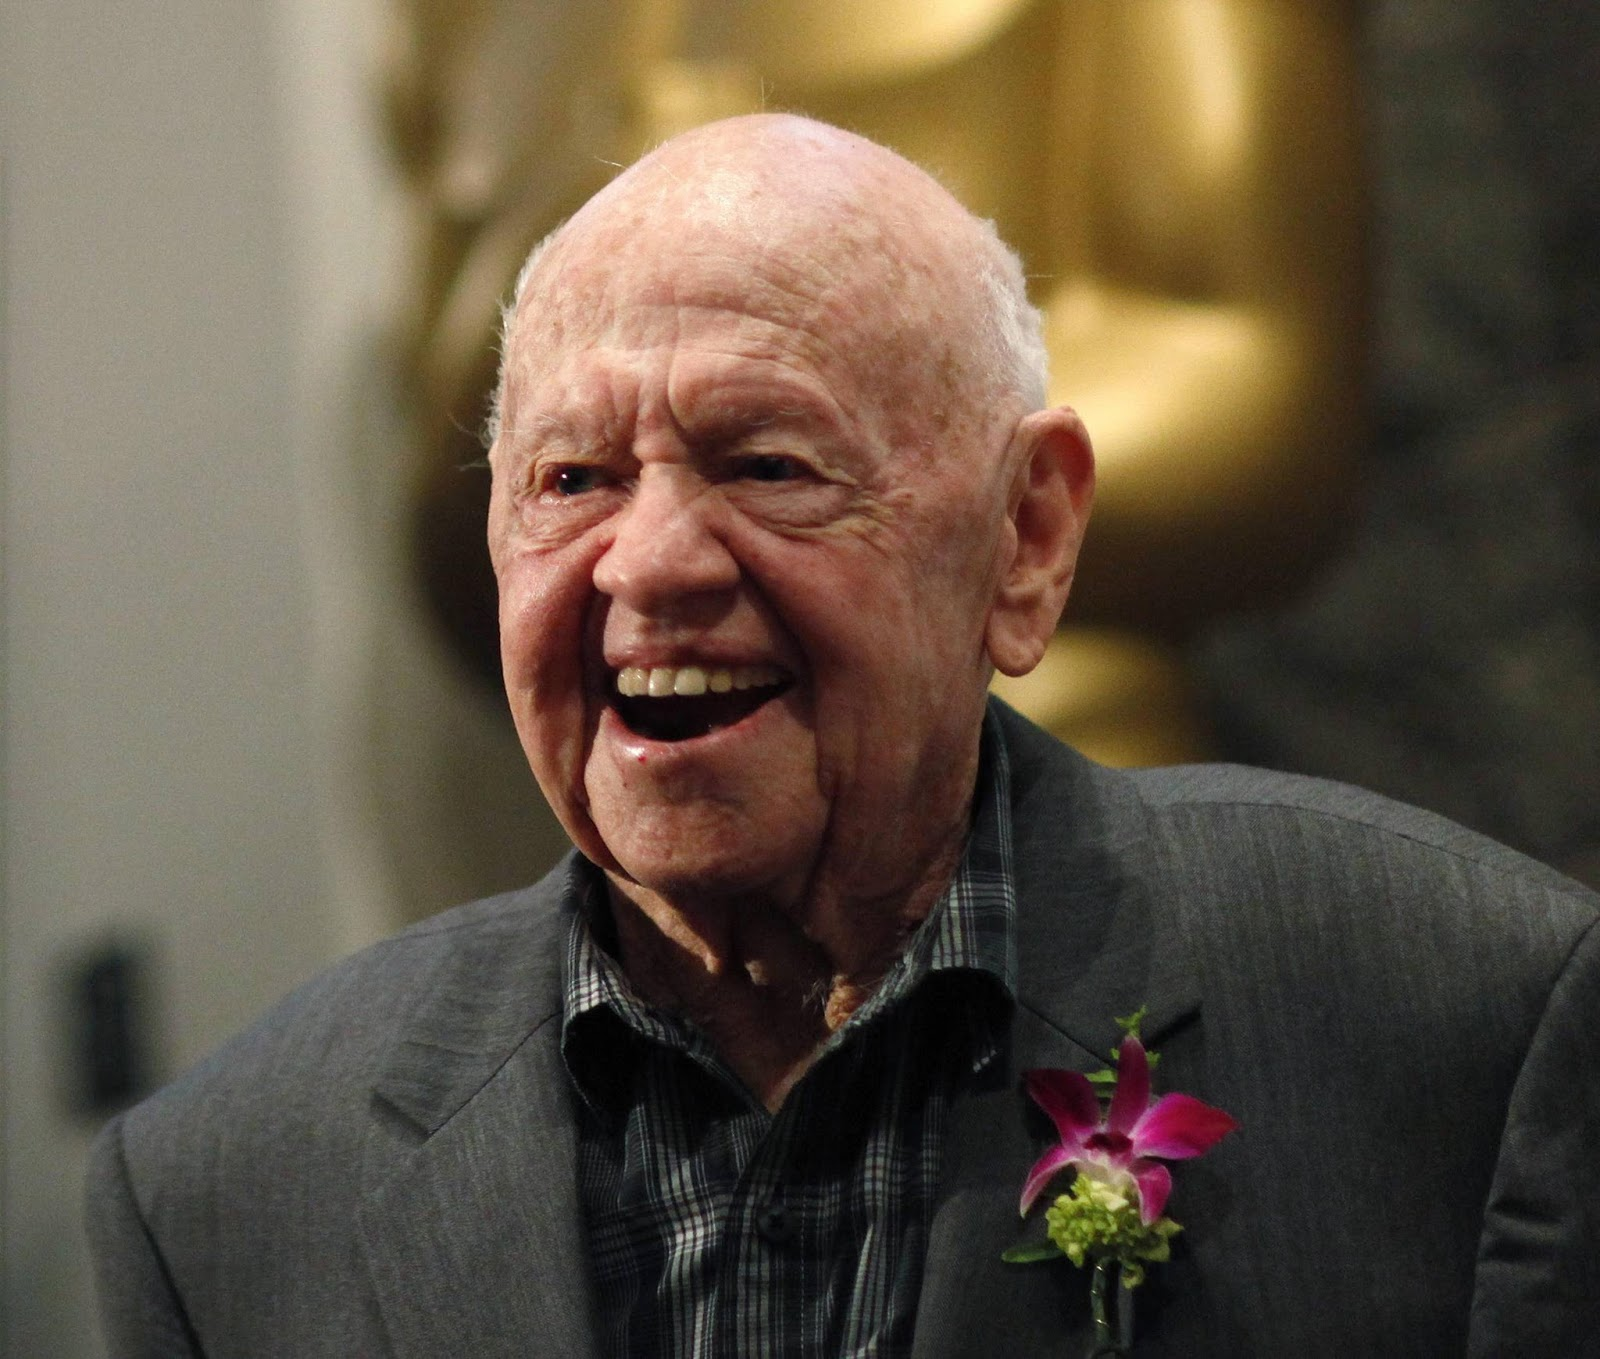 A TRIP DOWN MEMORY LANE: THE LAST DAYS OF MICKEY ROONEY